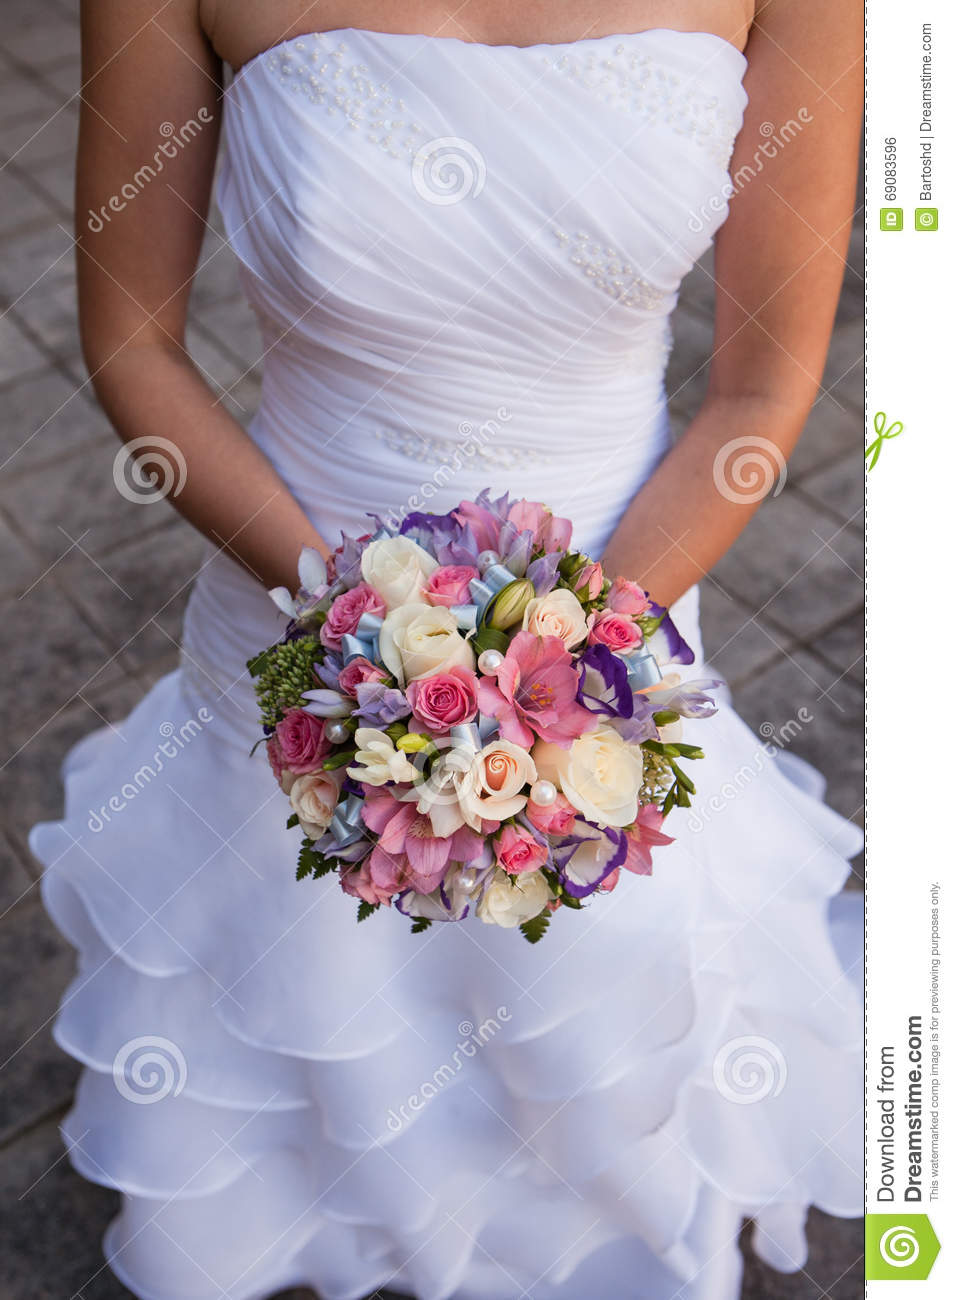 Beautiful Wedding A Bouquet In Hands Of The Bride Stock Photo